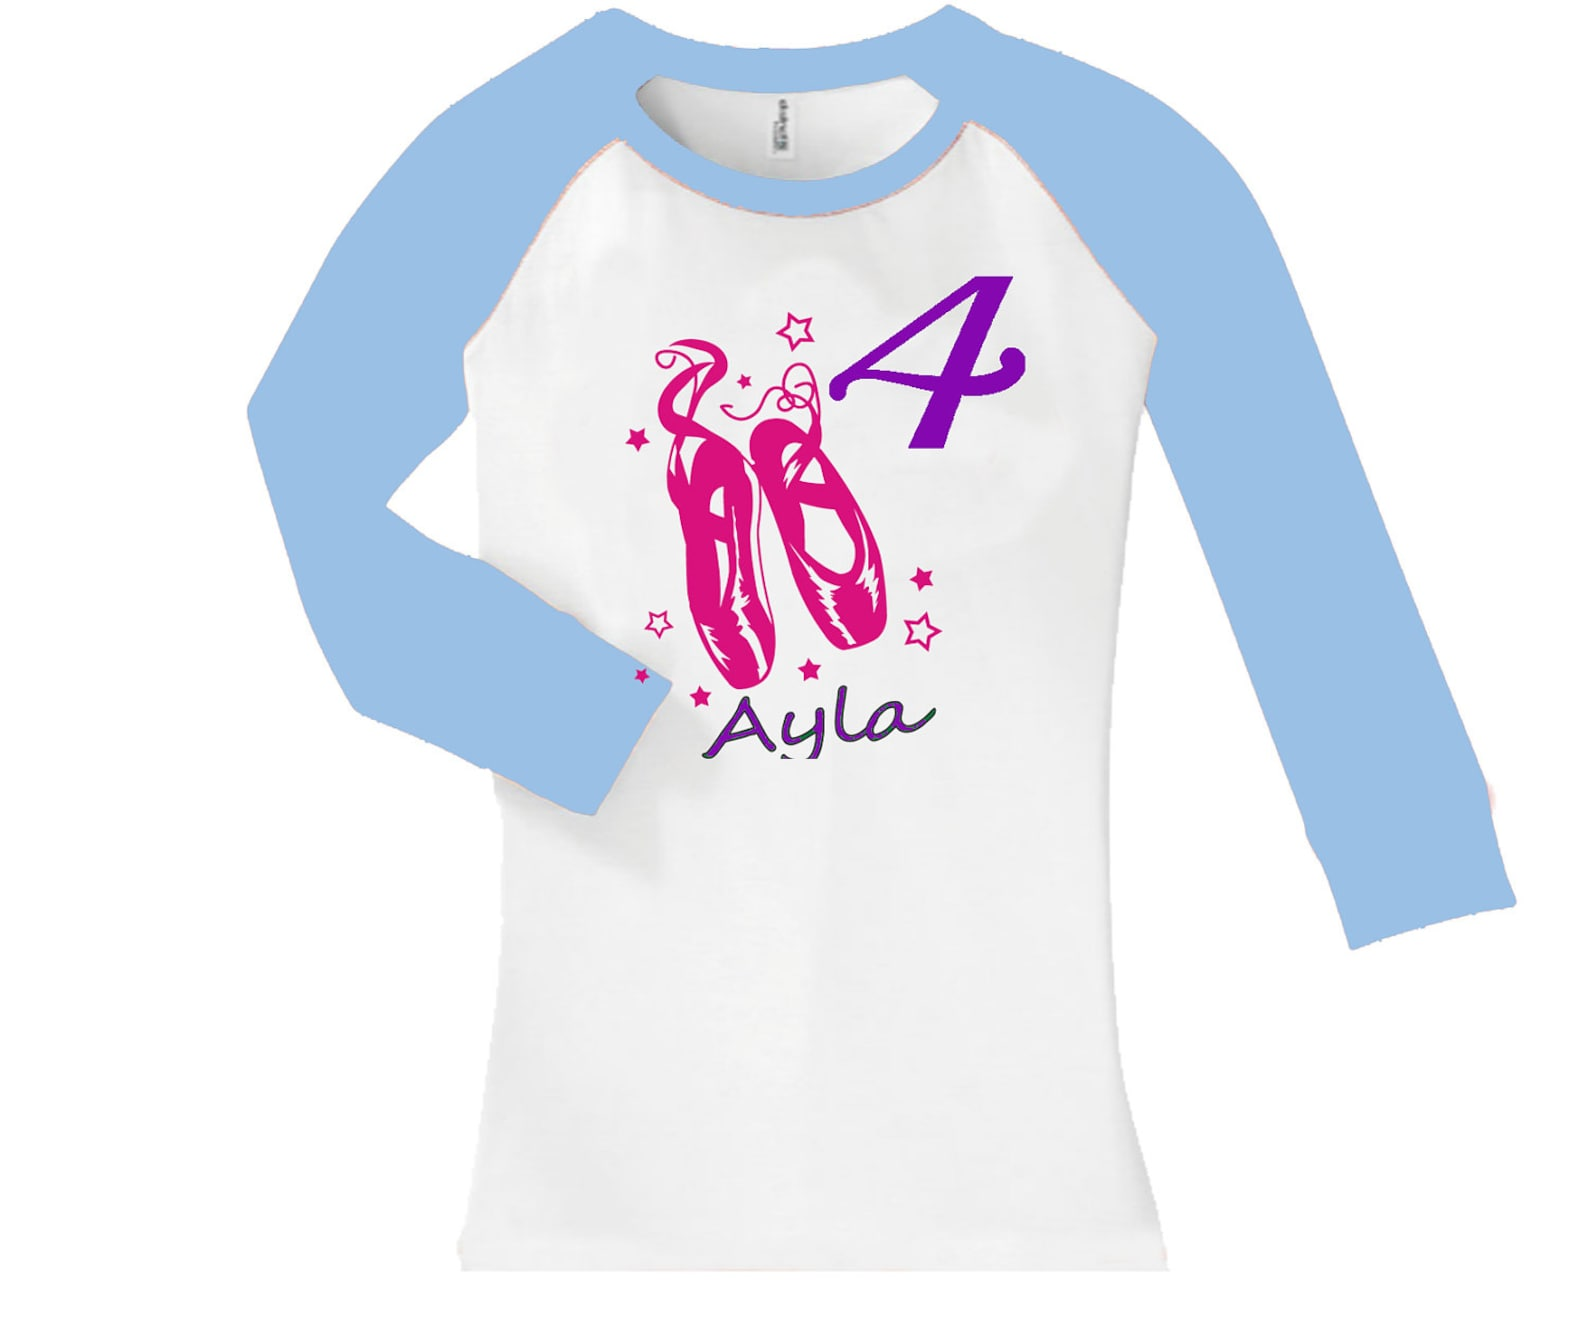 birthday ballet dance shoes shirt - cropped/long sleeve fitted raglan baseball shirt - any age and name - pick your colors!